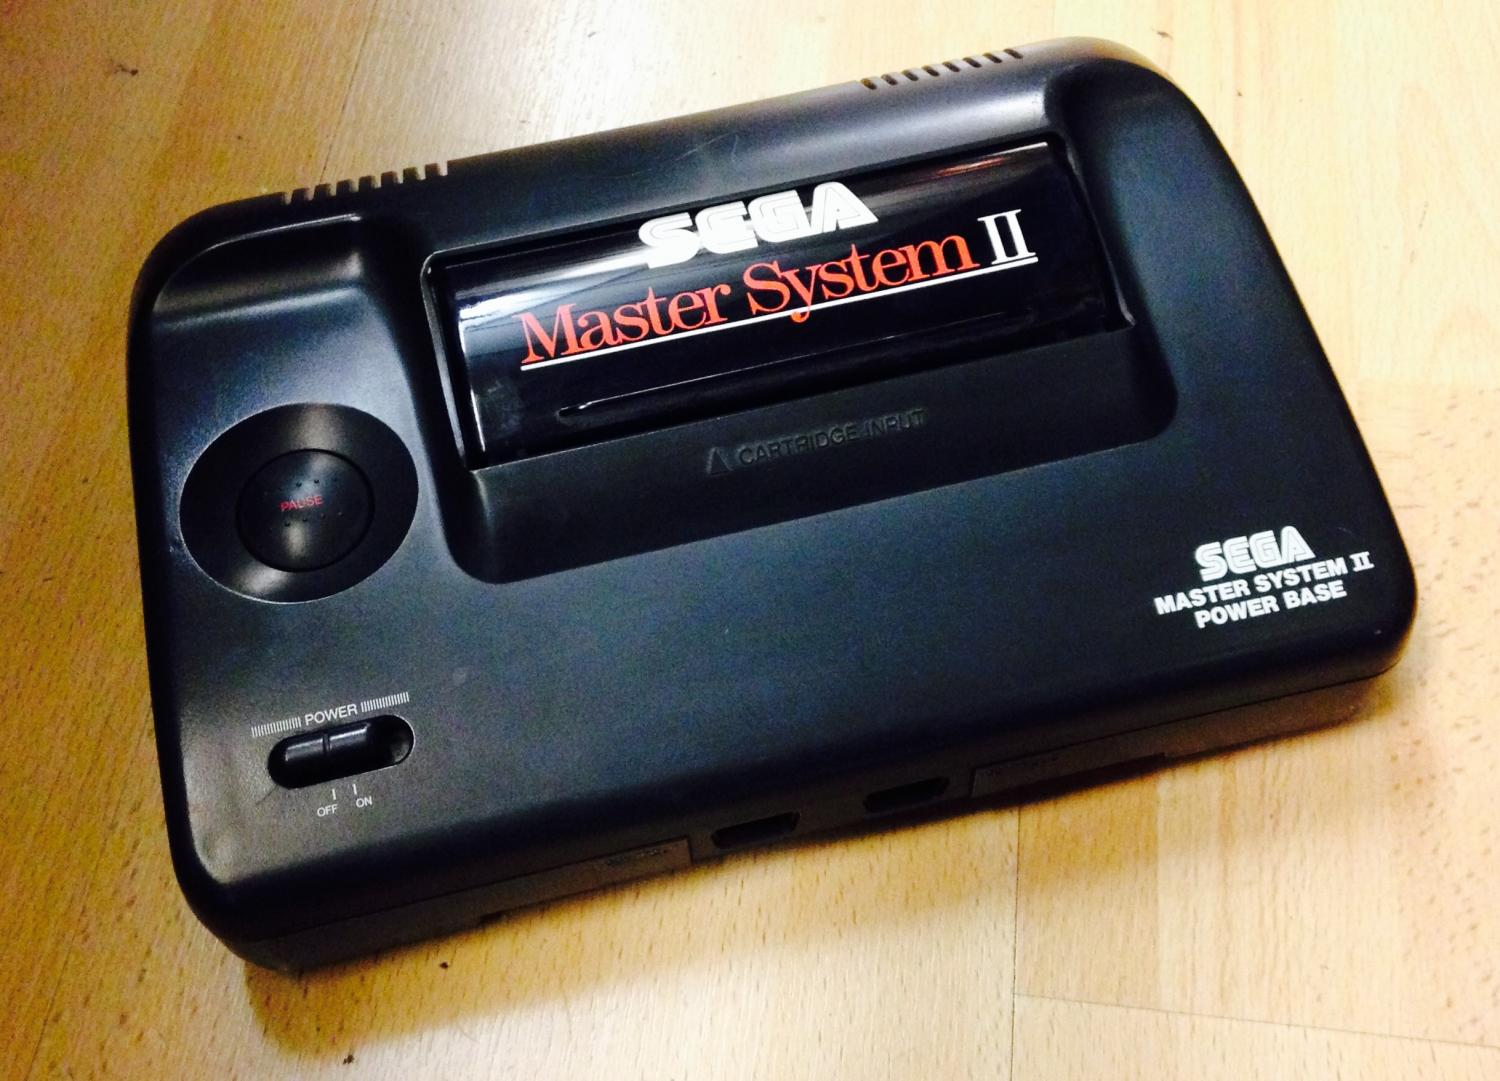 Sega master system ii for sale at x electrical - Sega master system console for sale ...